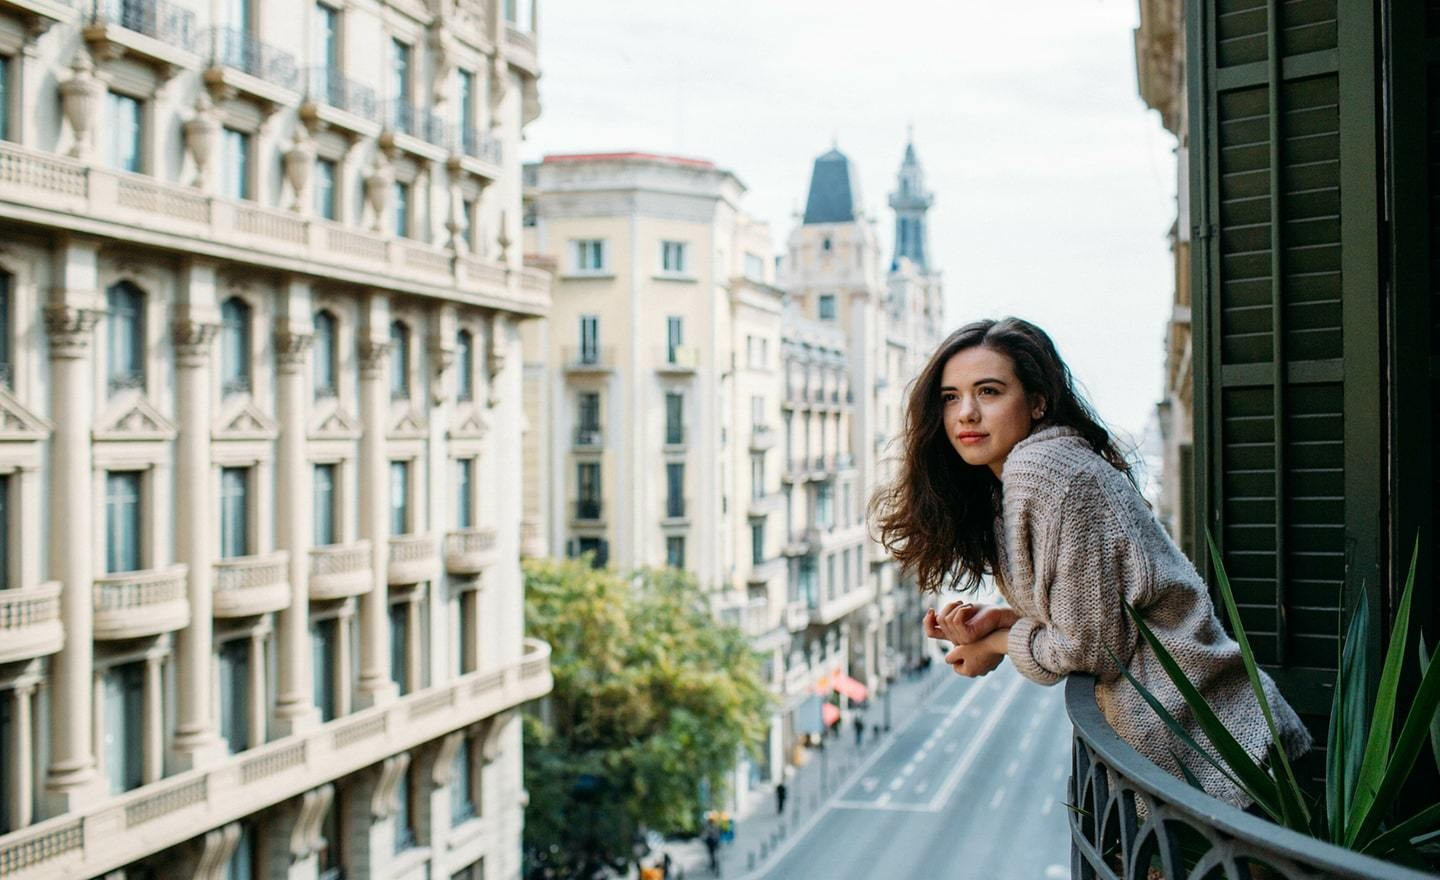 Woman looking out a balcony in a European city